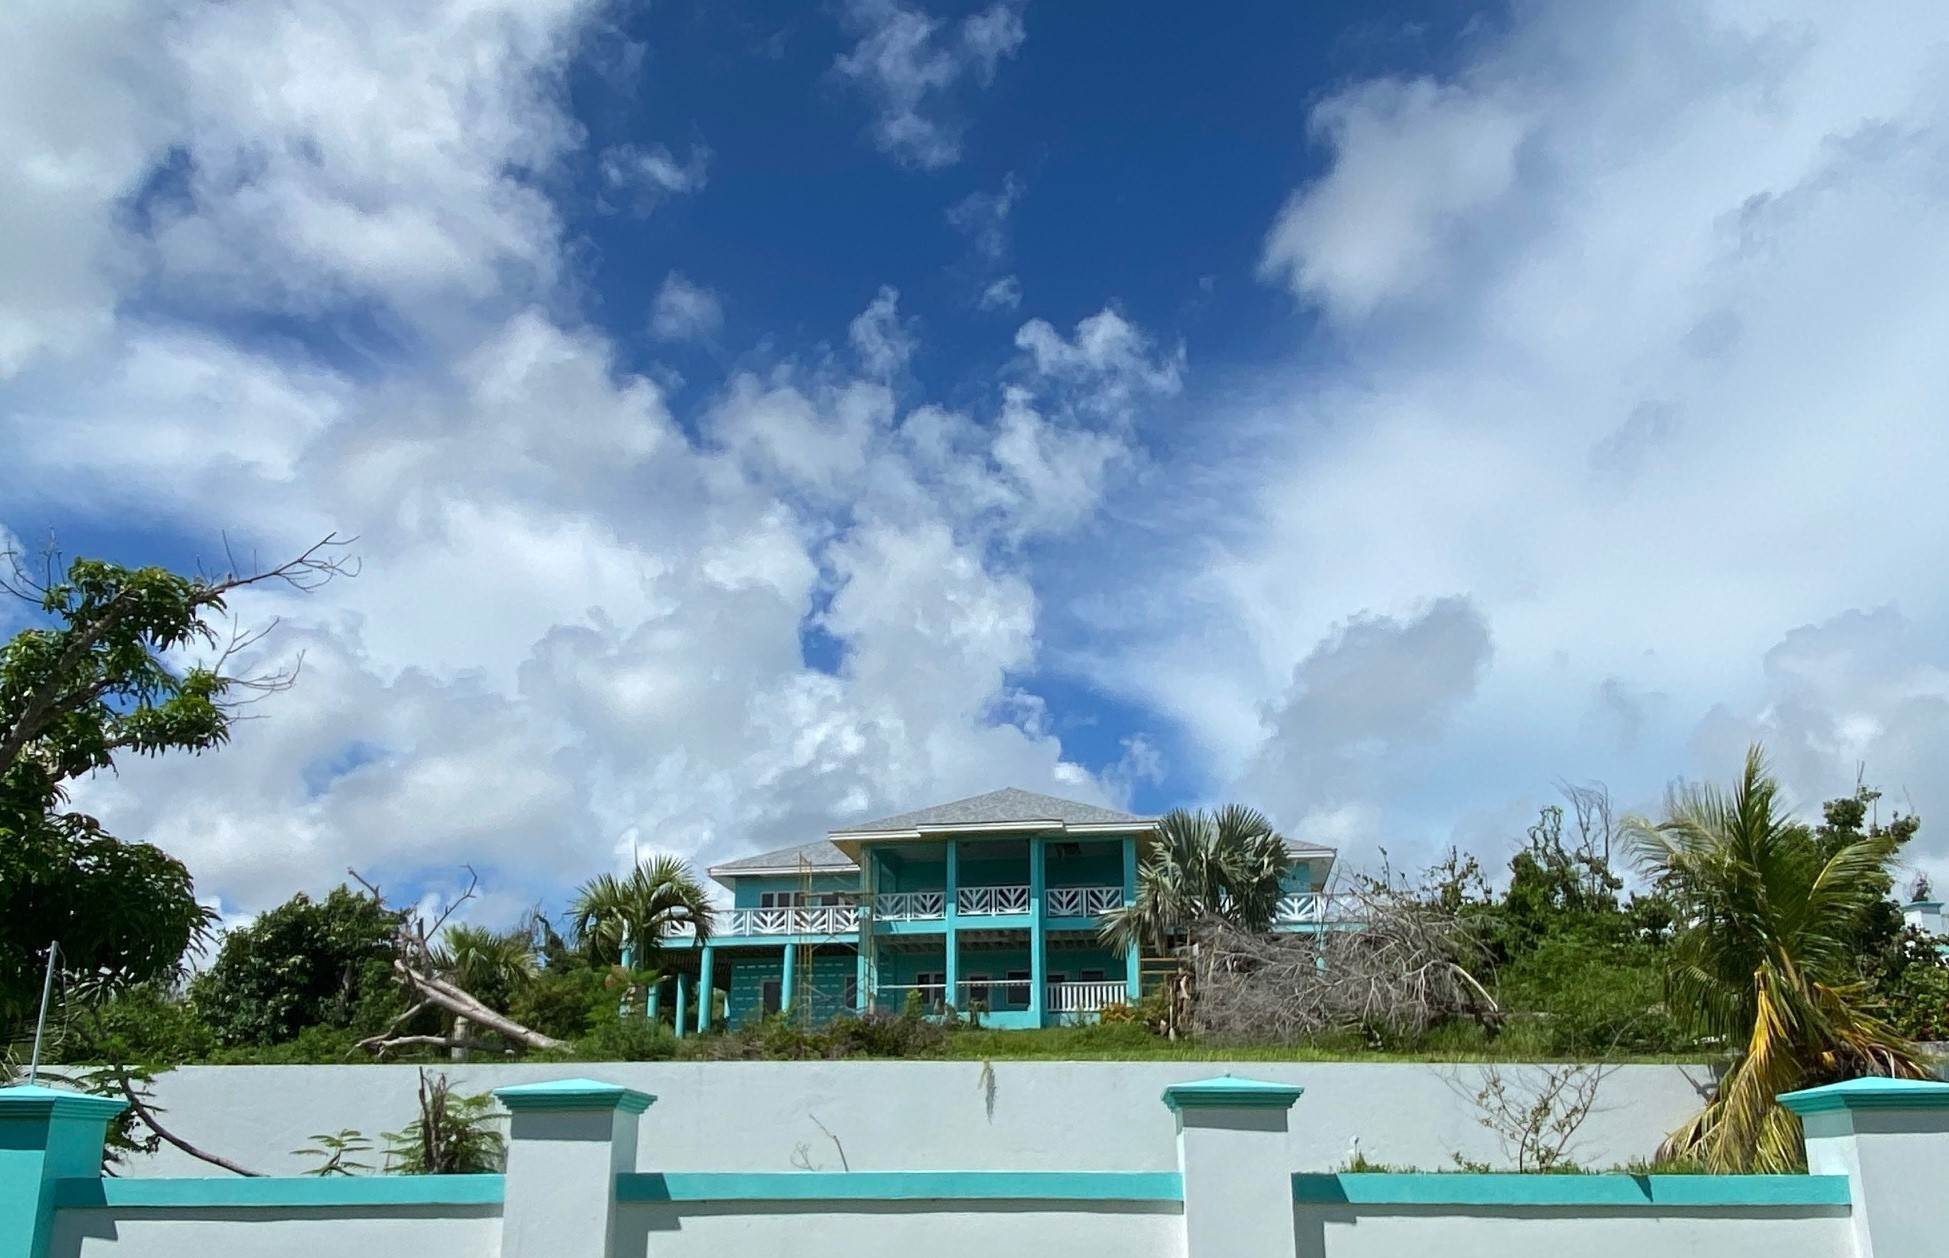 Single Family Homes for Sale at Coral Point with Sea Views - MLS 41591 Great Cistern, Marsh Harbour, Abaco Bahamas